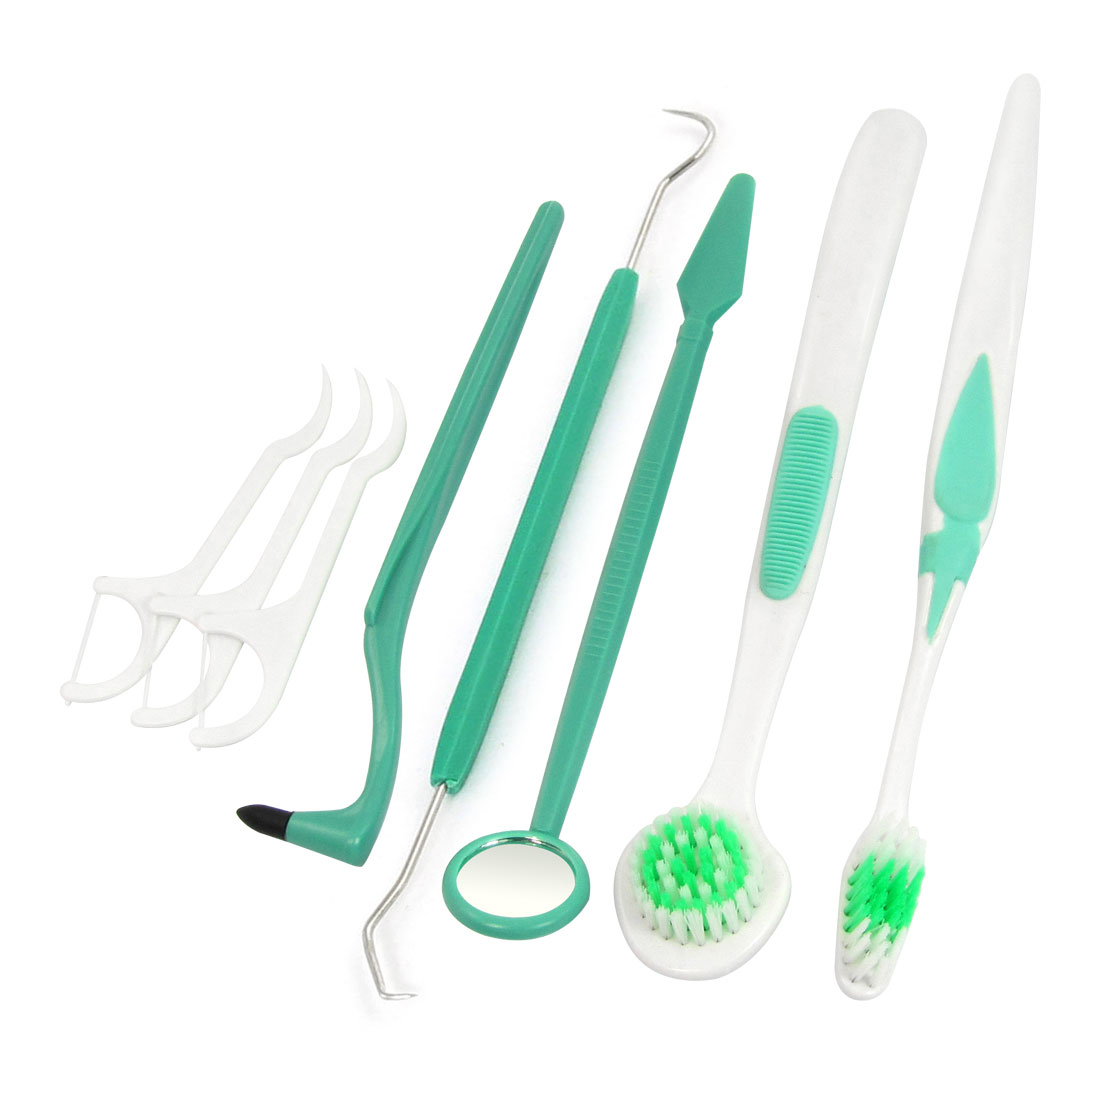 Home 8 in 1 Pack Mouth Mirror Clean Hygiene Dental Oral Care Tools Set